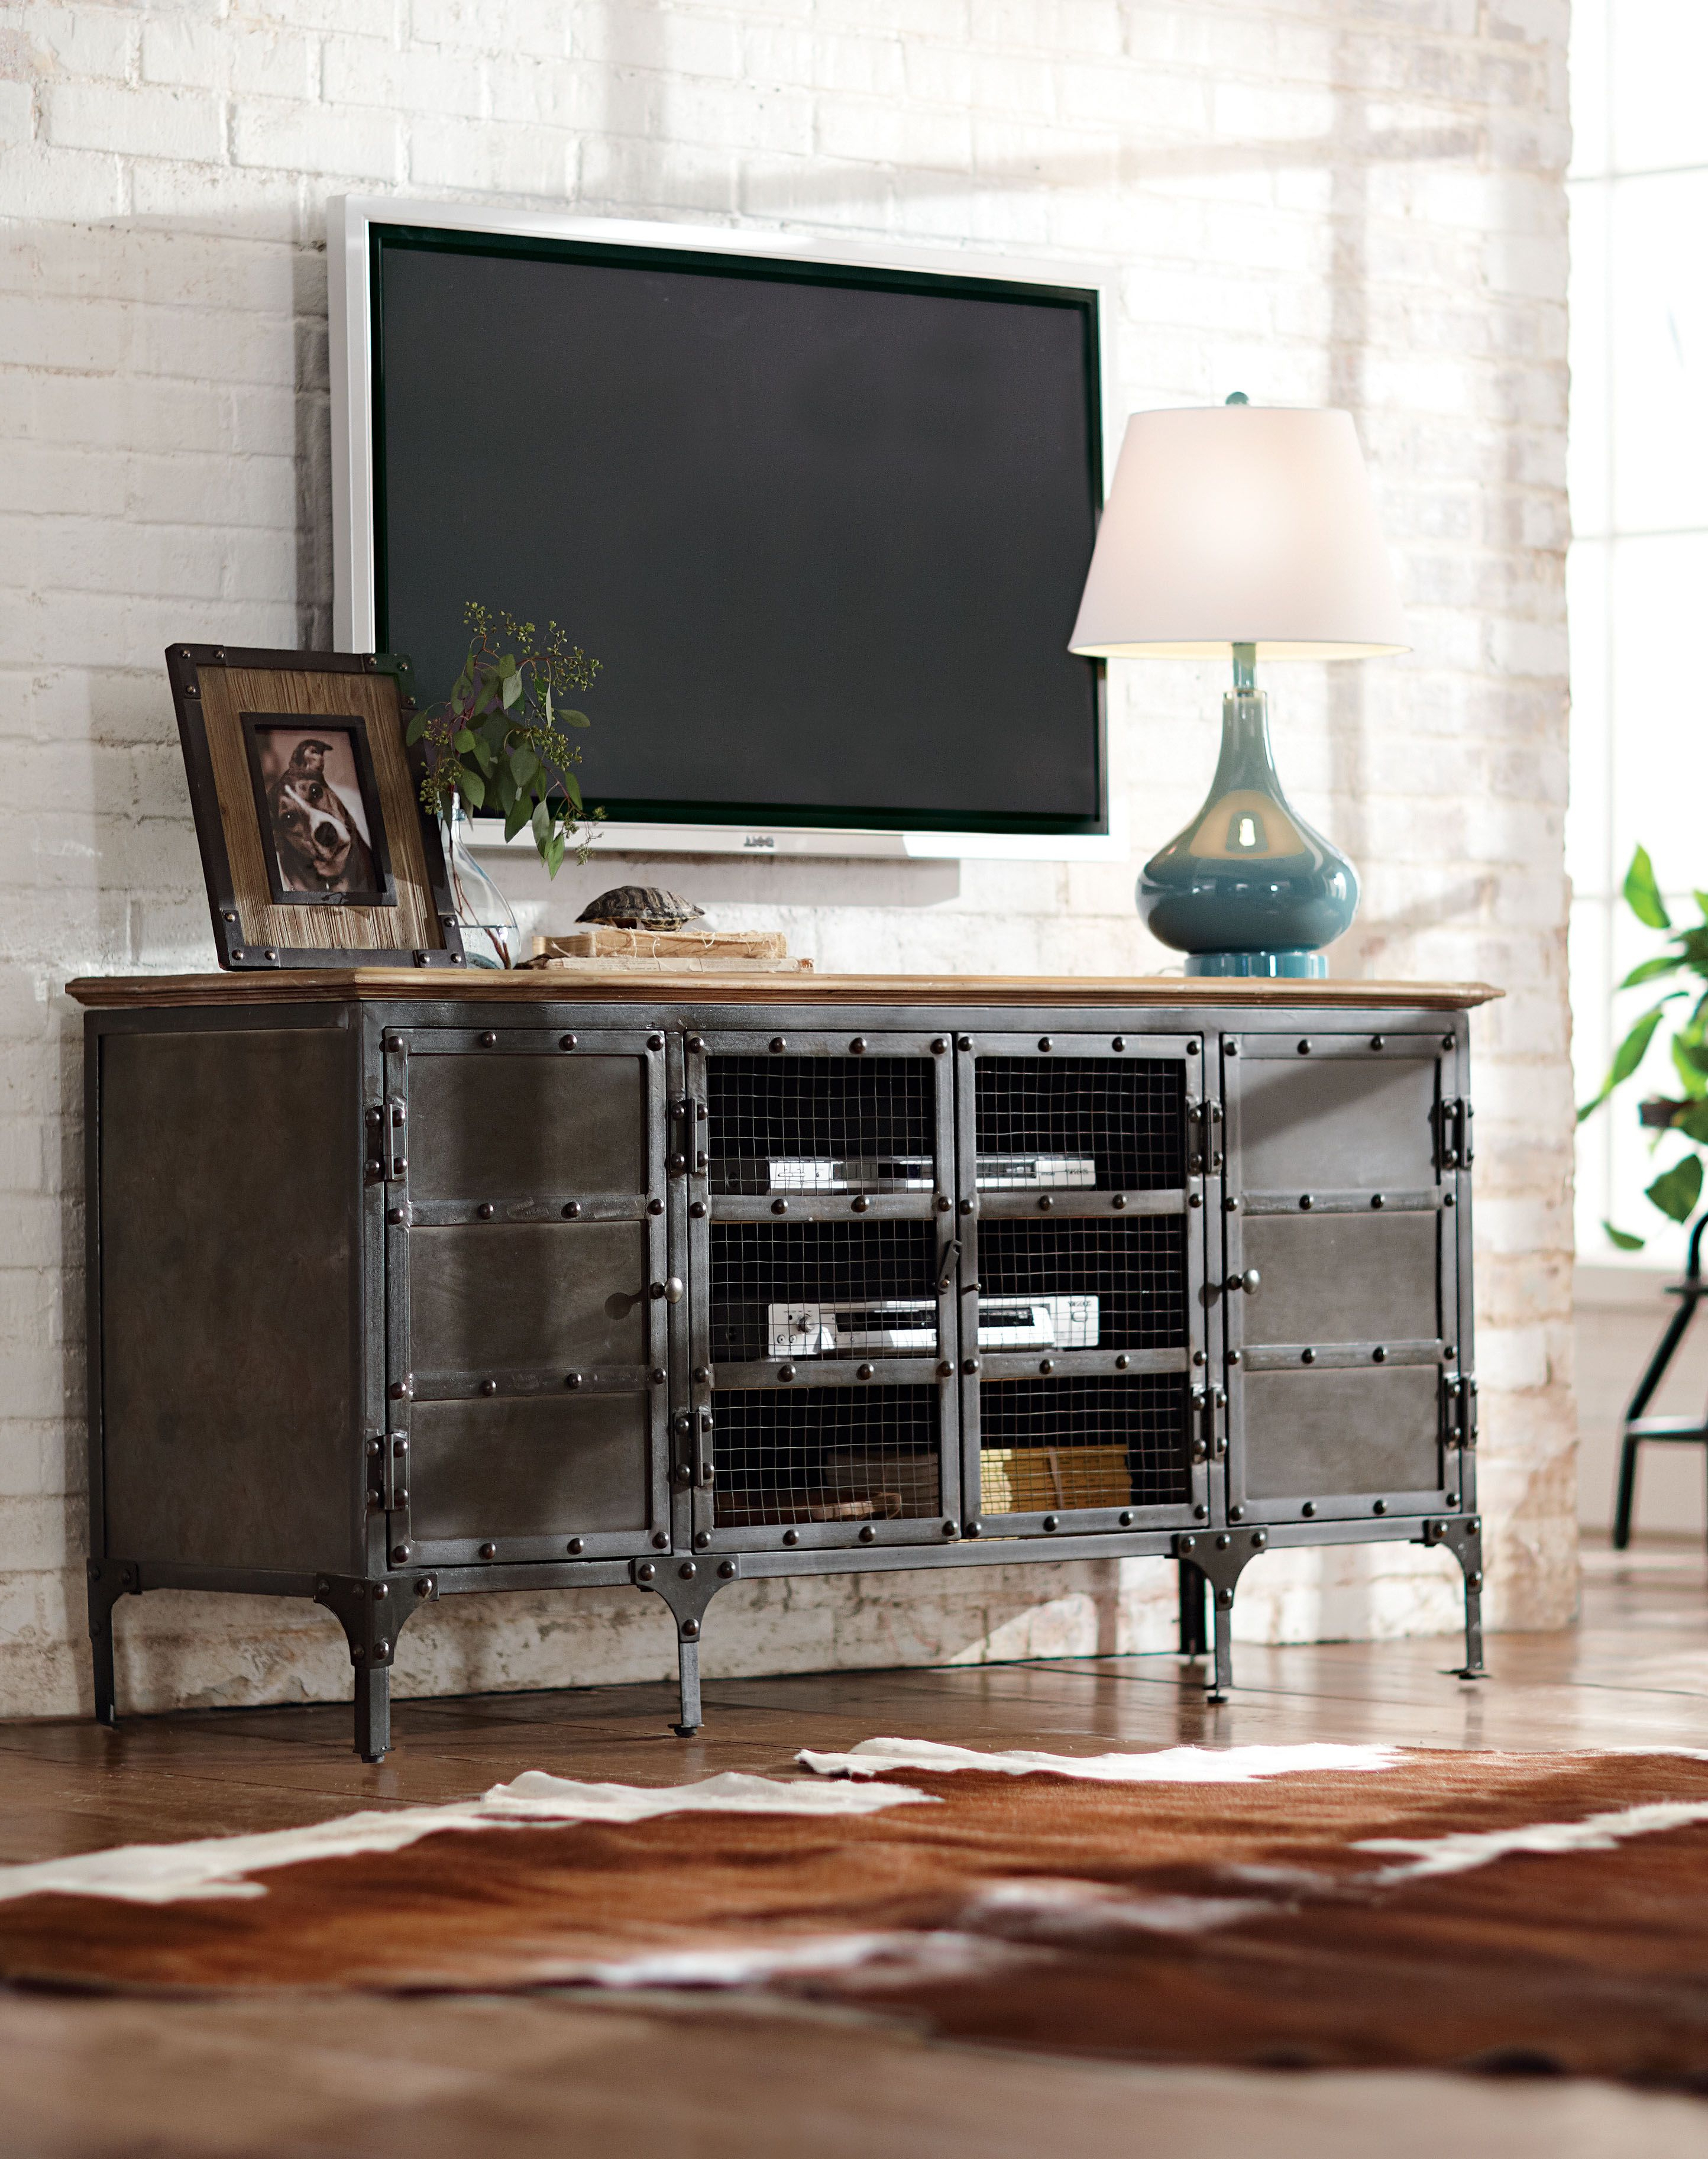 Recent Tv Stand Made Stylish (View 19 of 20)